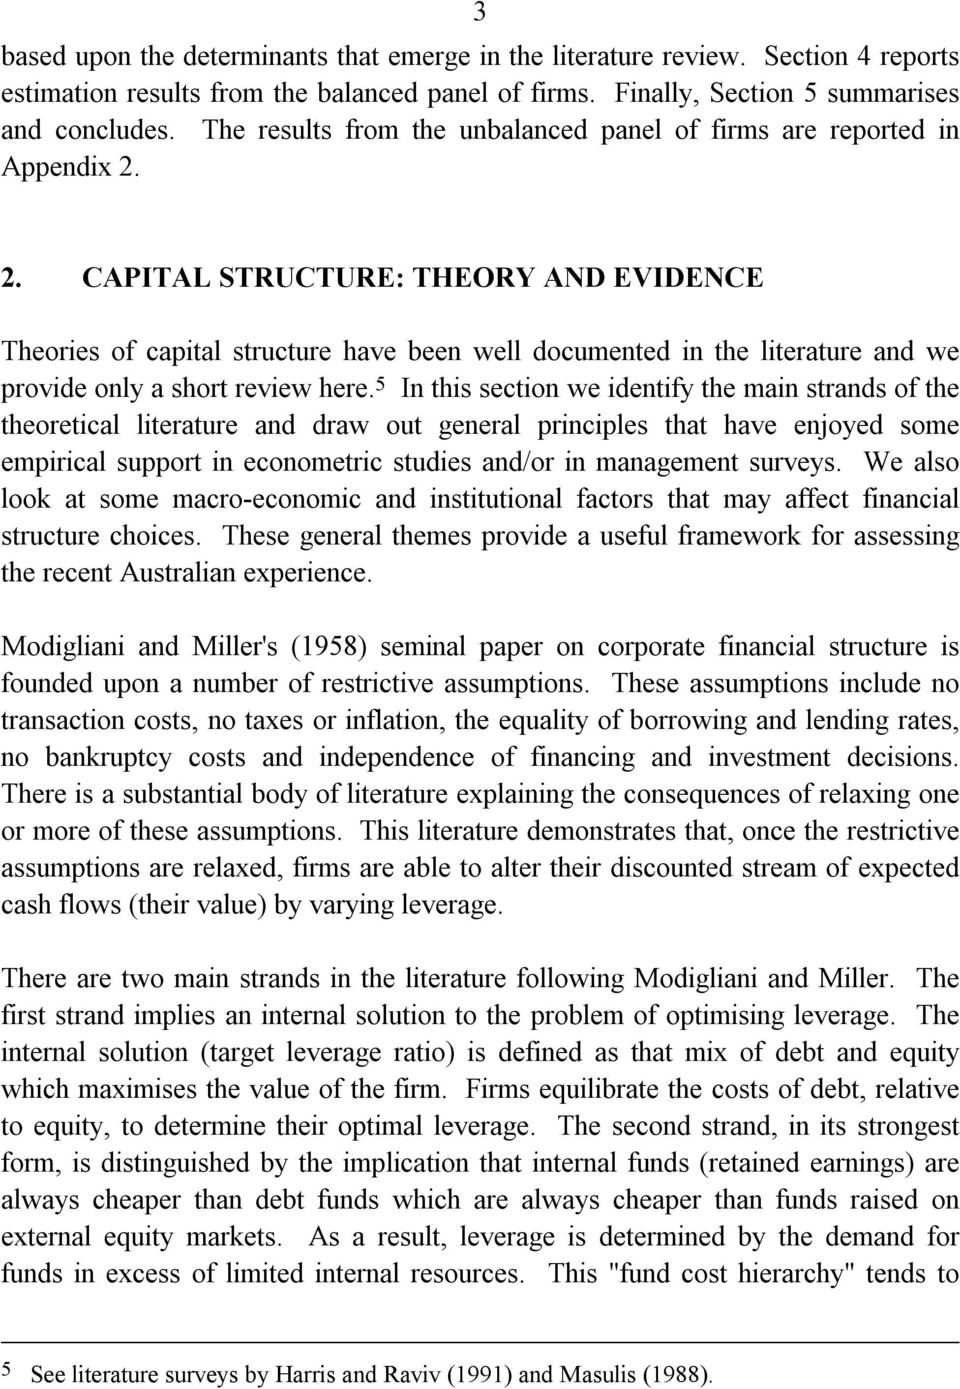 2. CAPITAL STRUCTURE: THEORY AND EVIDENCE Theories of capital structure have been well documented in the literature and we provide only a short review here.